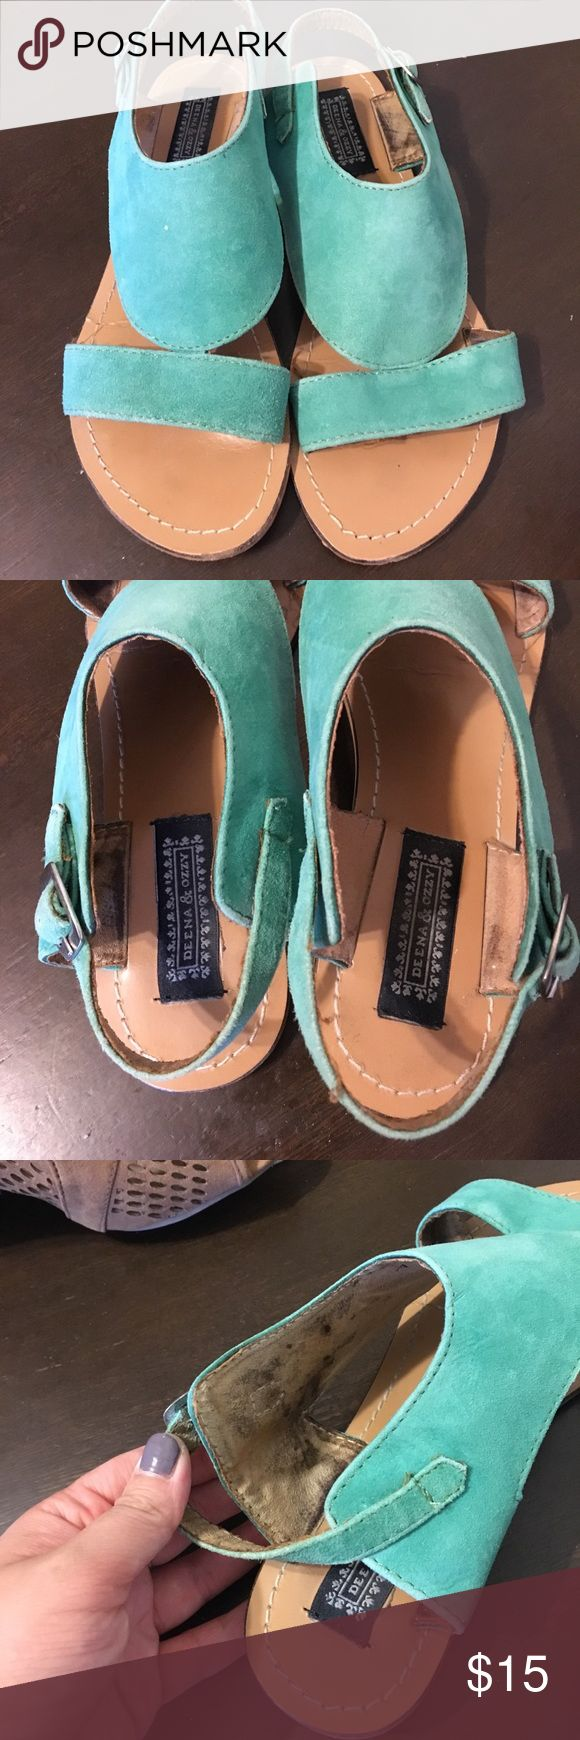 Deena and ozzy design oriented sandals Sandals worn six times. Super cute real/turquoise color. Their is some staining on the inside of the sandal but cannot be seen when worn. Deena & Ozzy Shoes Sandals